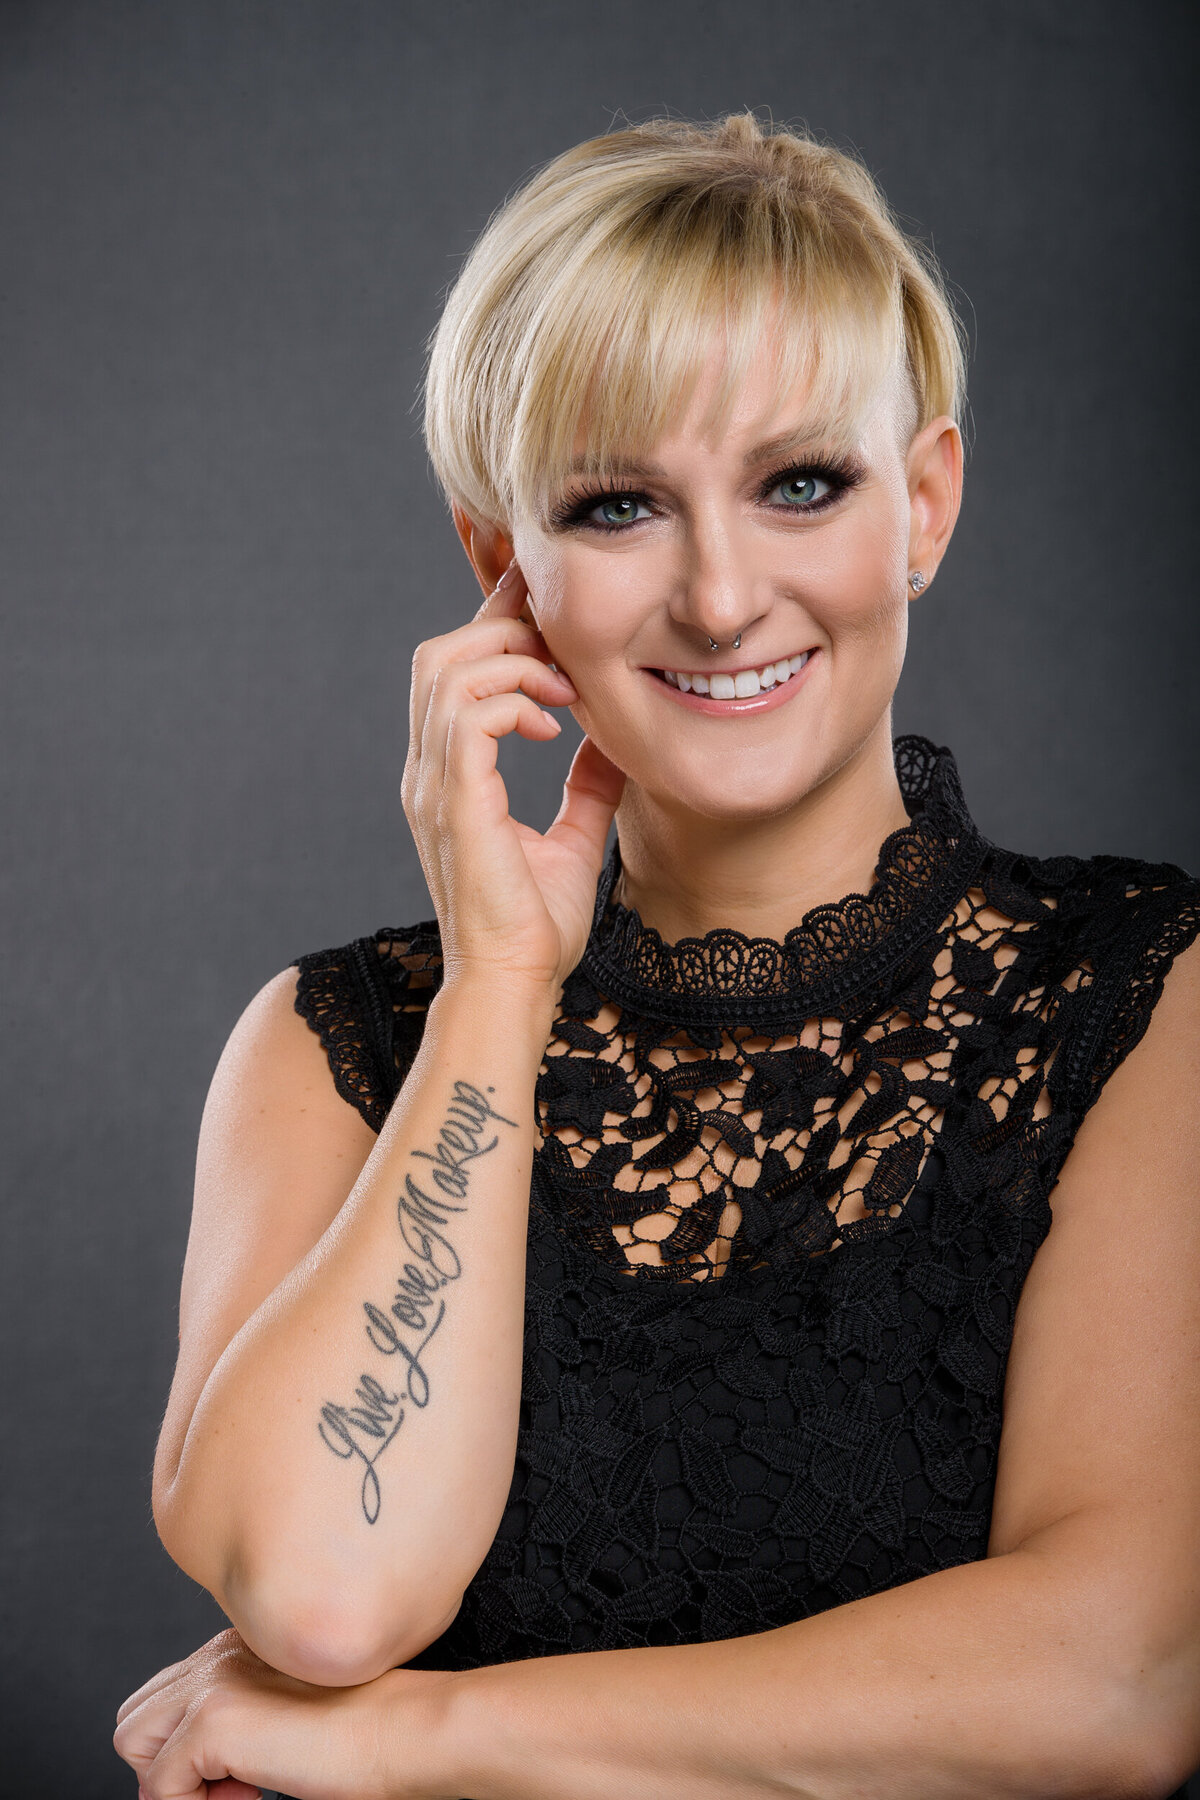 Makeup Artist headshot with tattoos showing